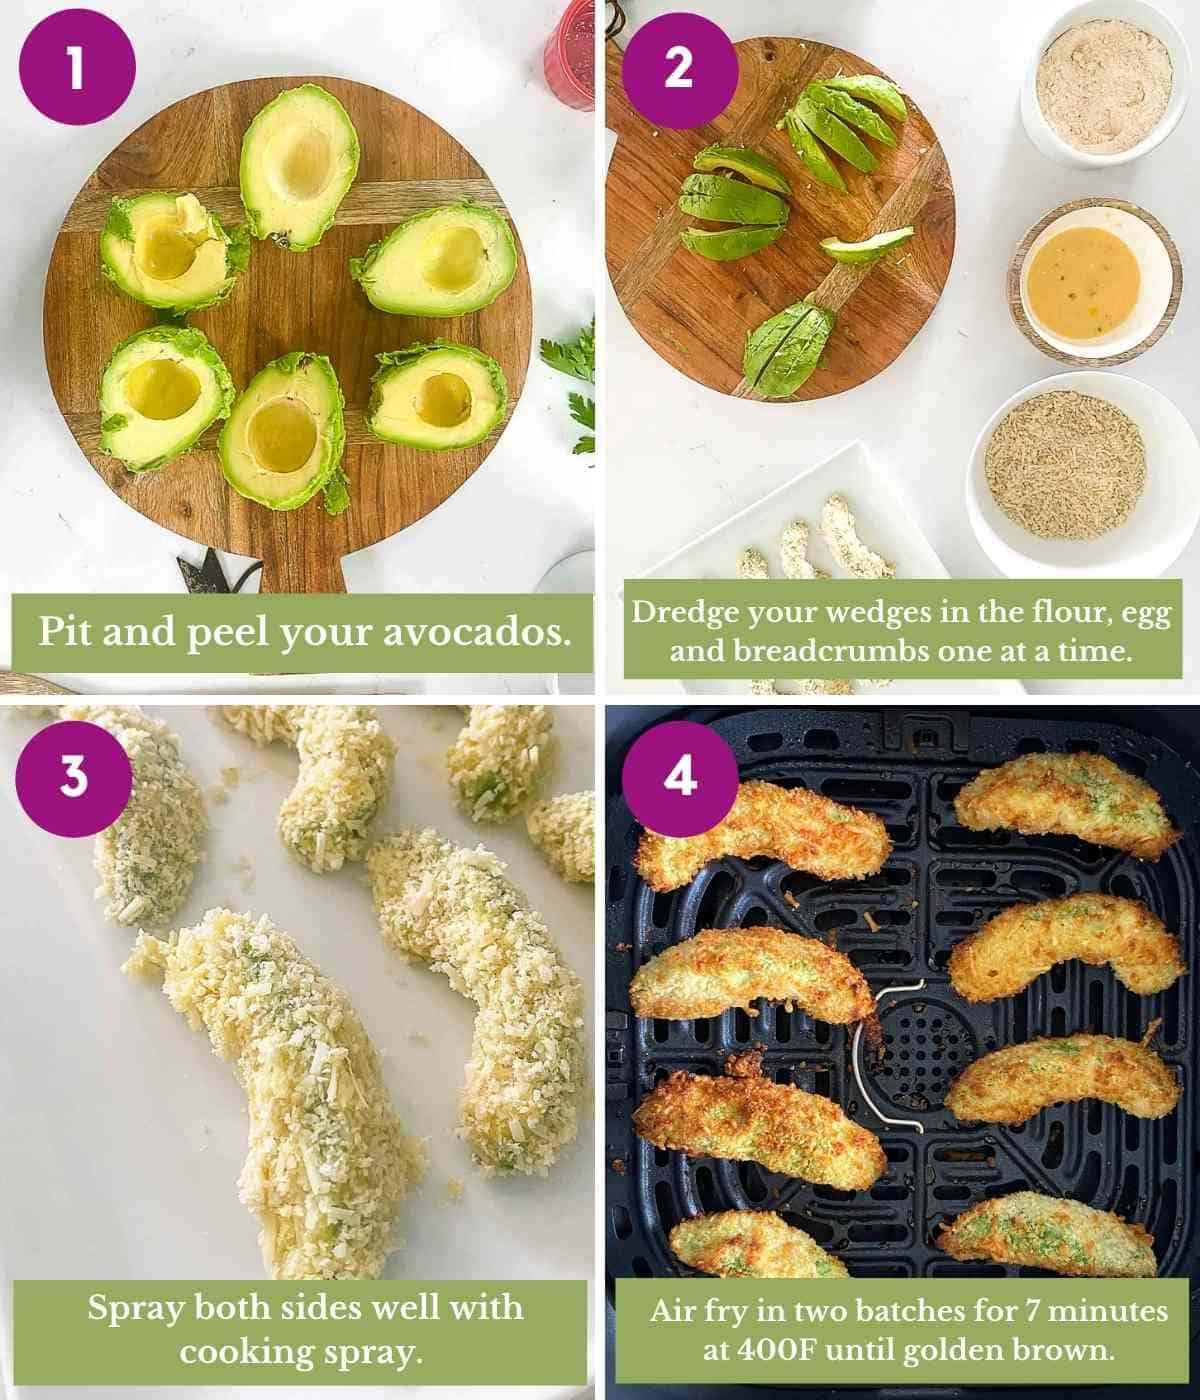 Steps showing how to make avocado fries using an air fryer.